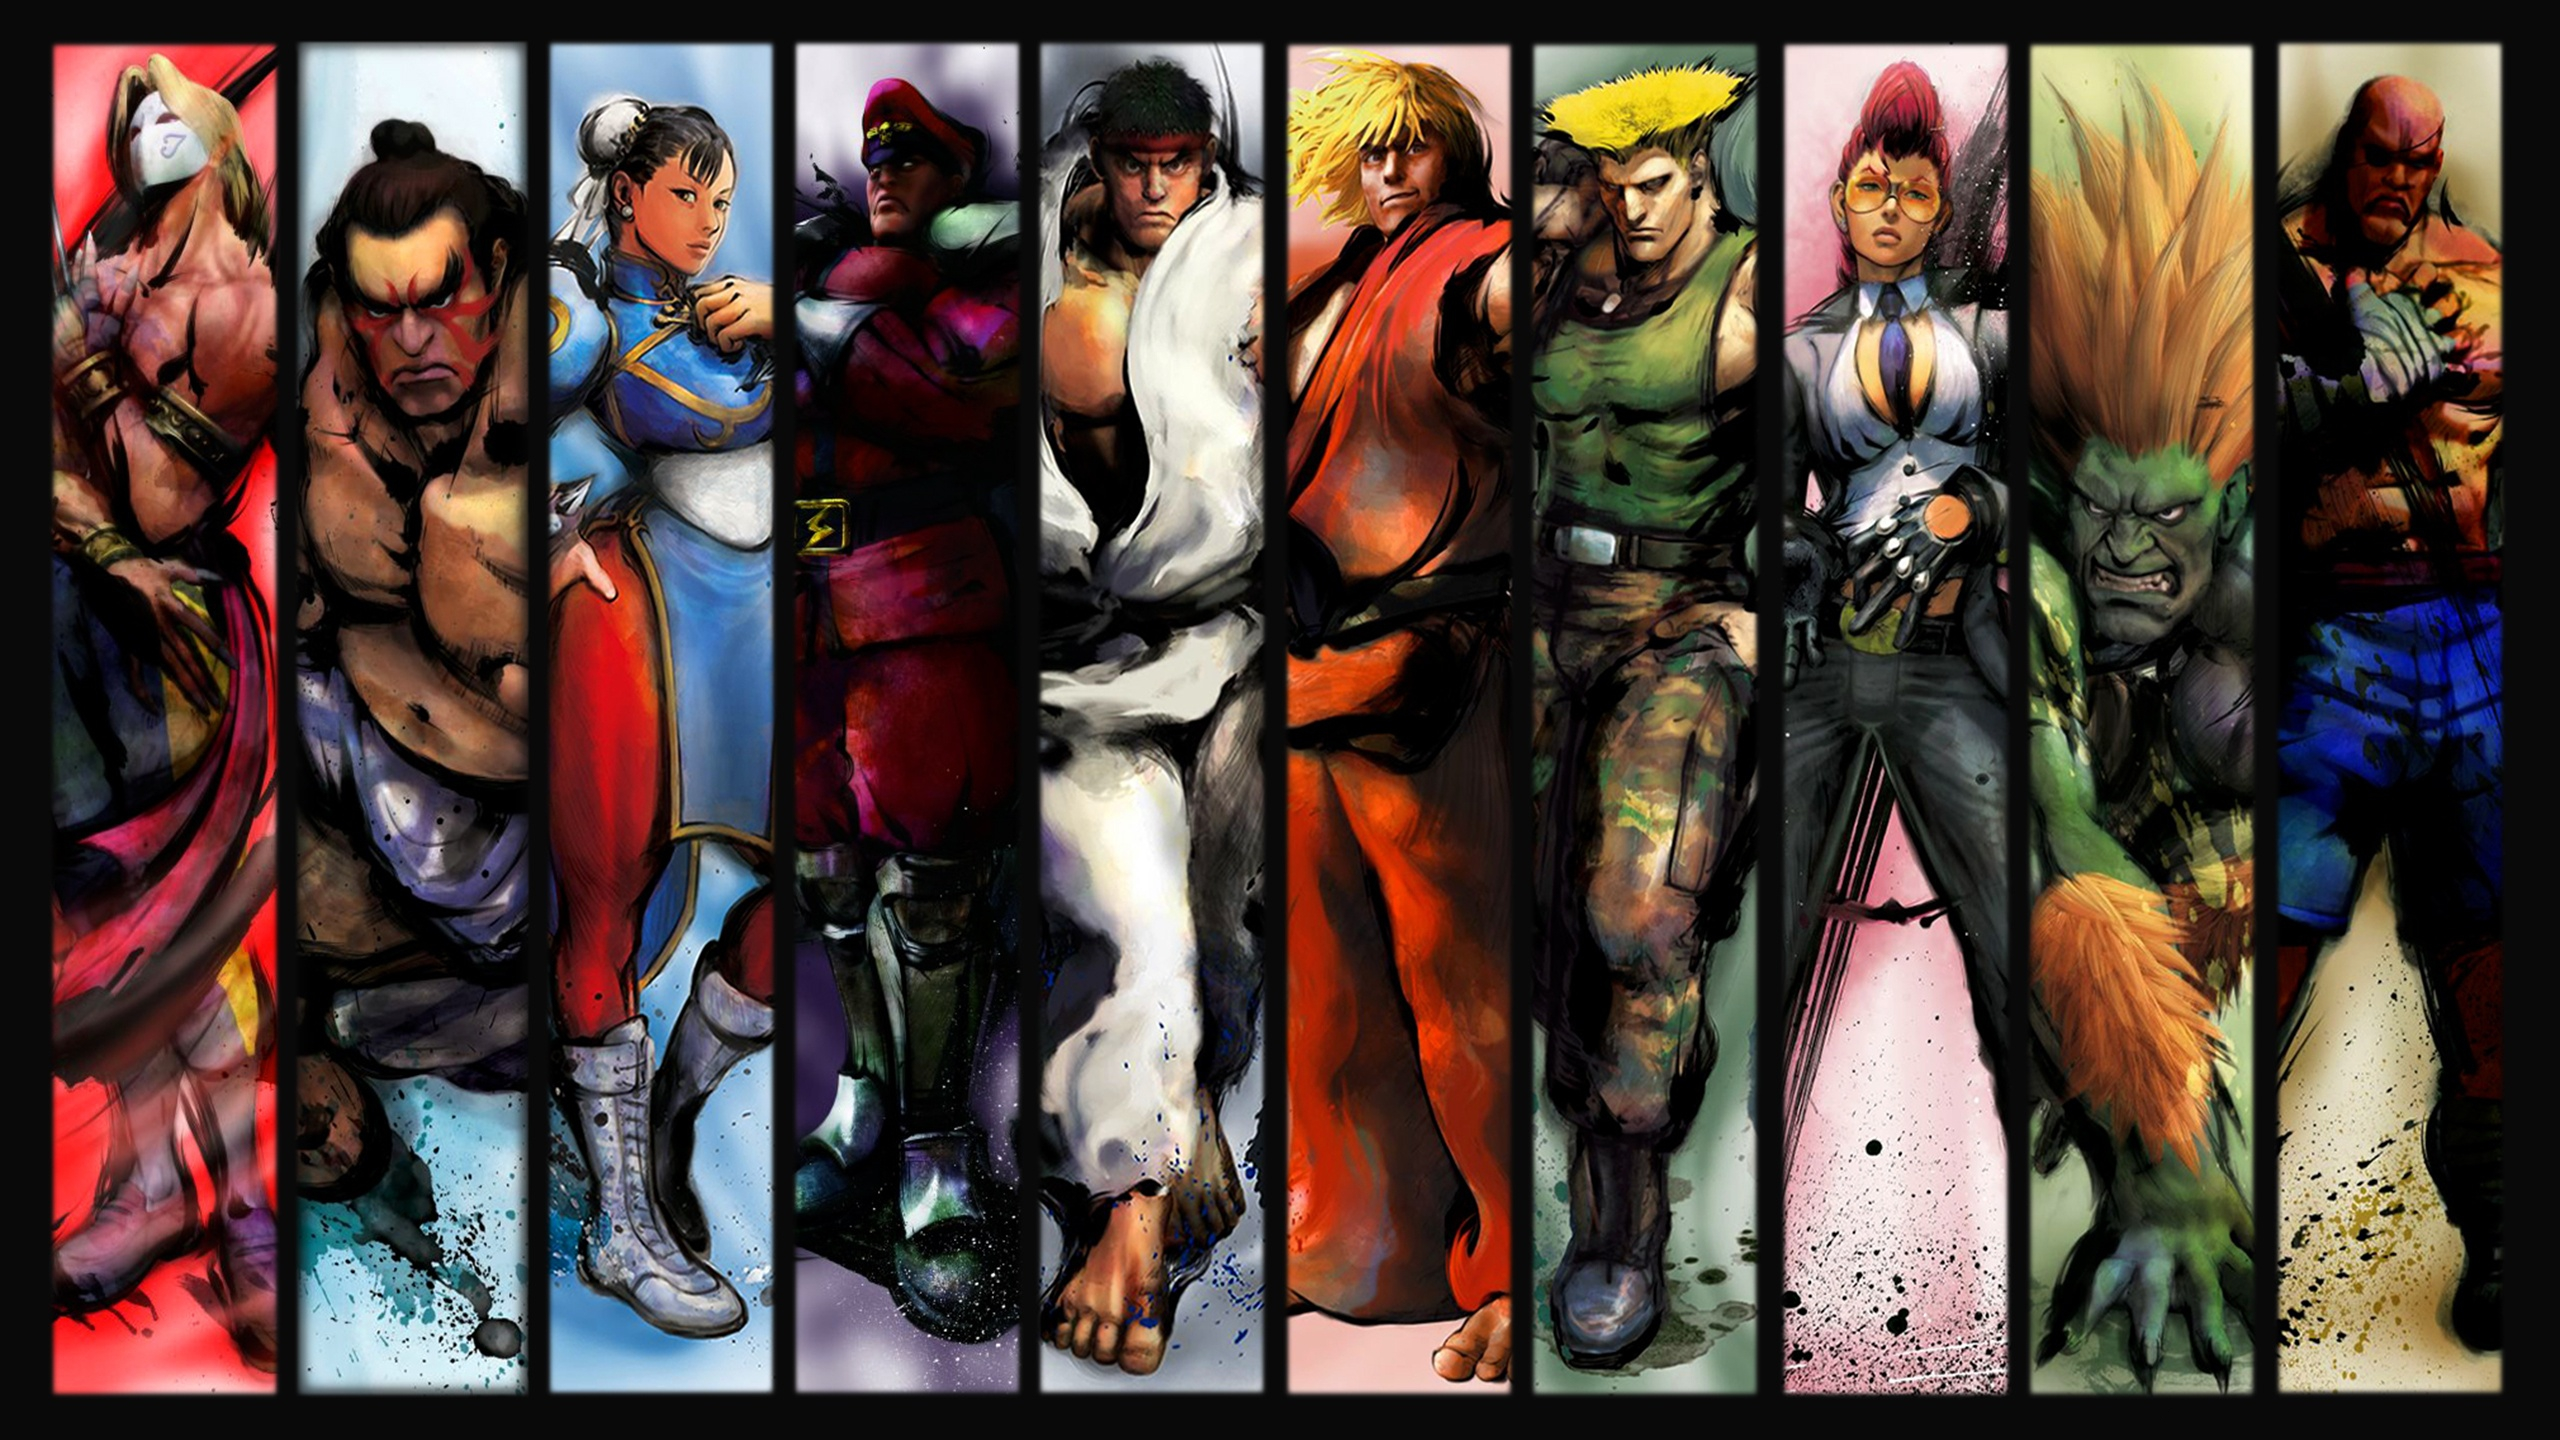 Street Fighter II Wallpapers HD Backgrounds – Scalsys